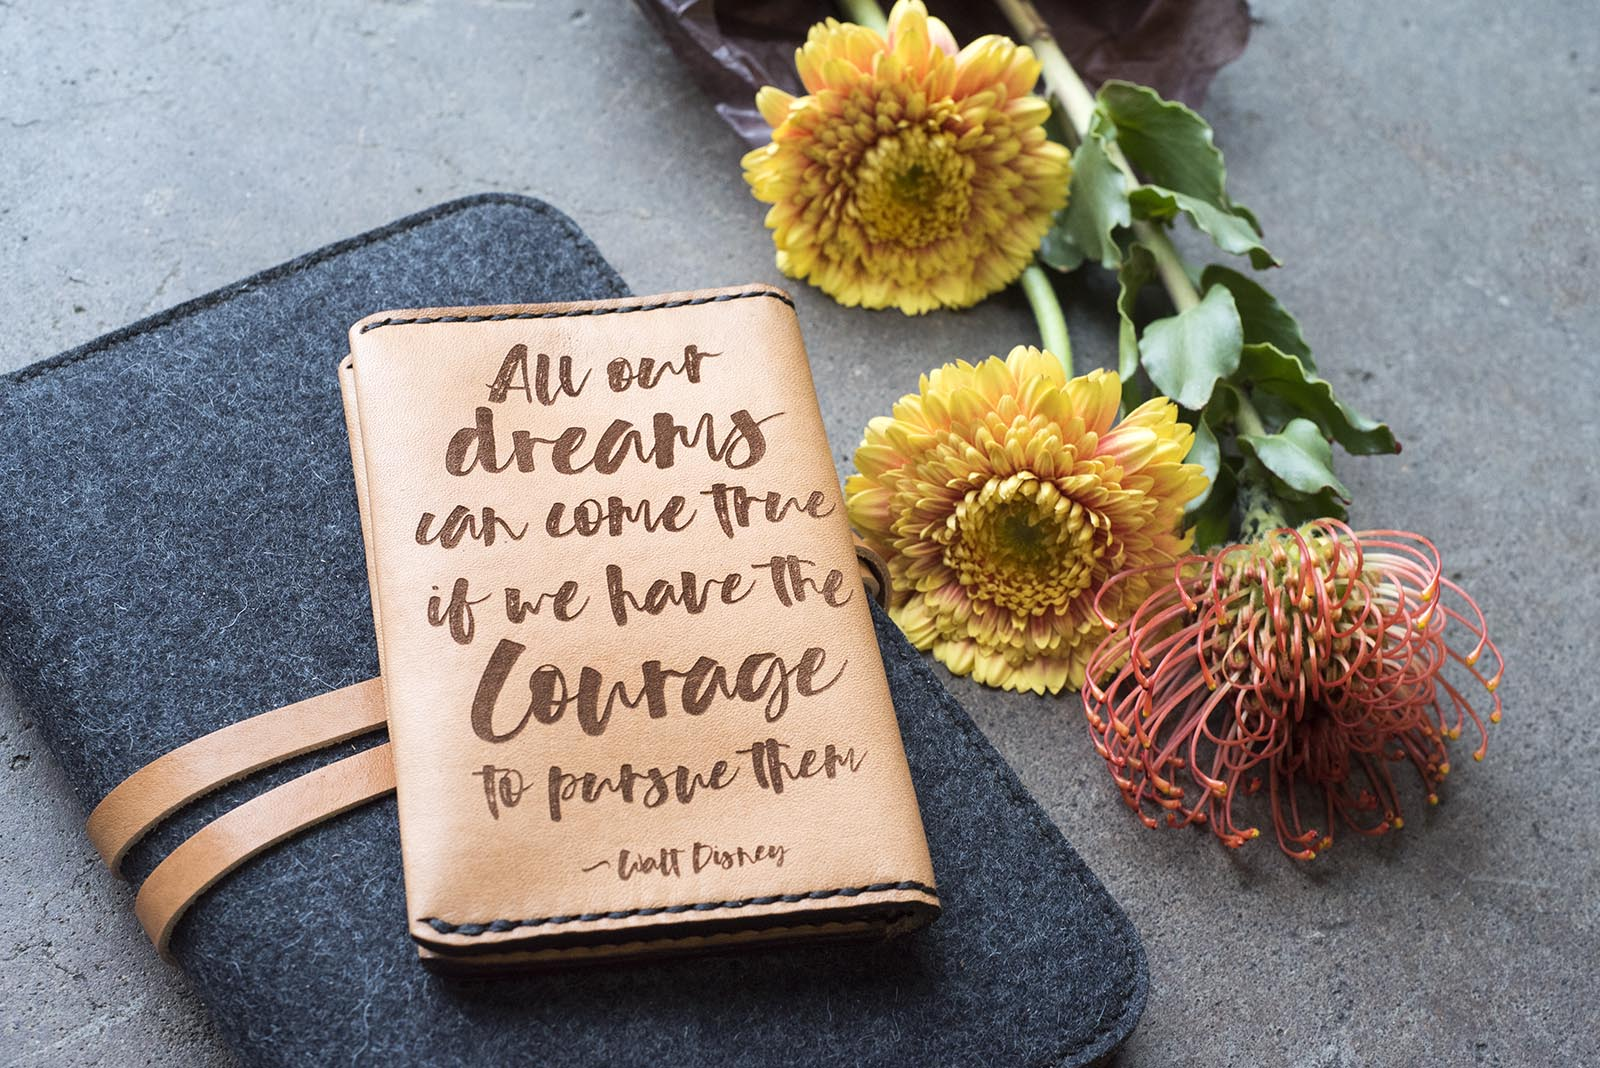 Hand and Hide Custom Leather Journal Covers with Quotes